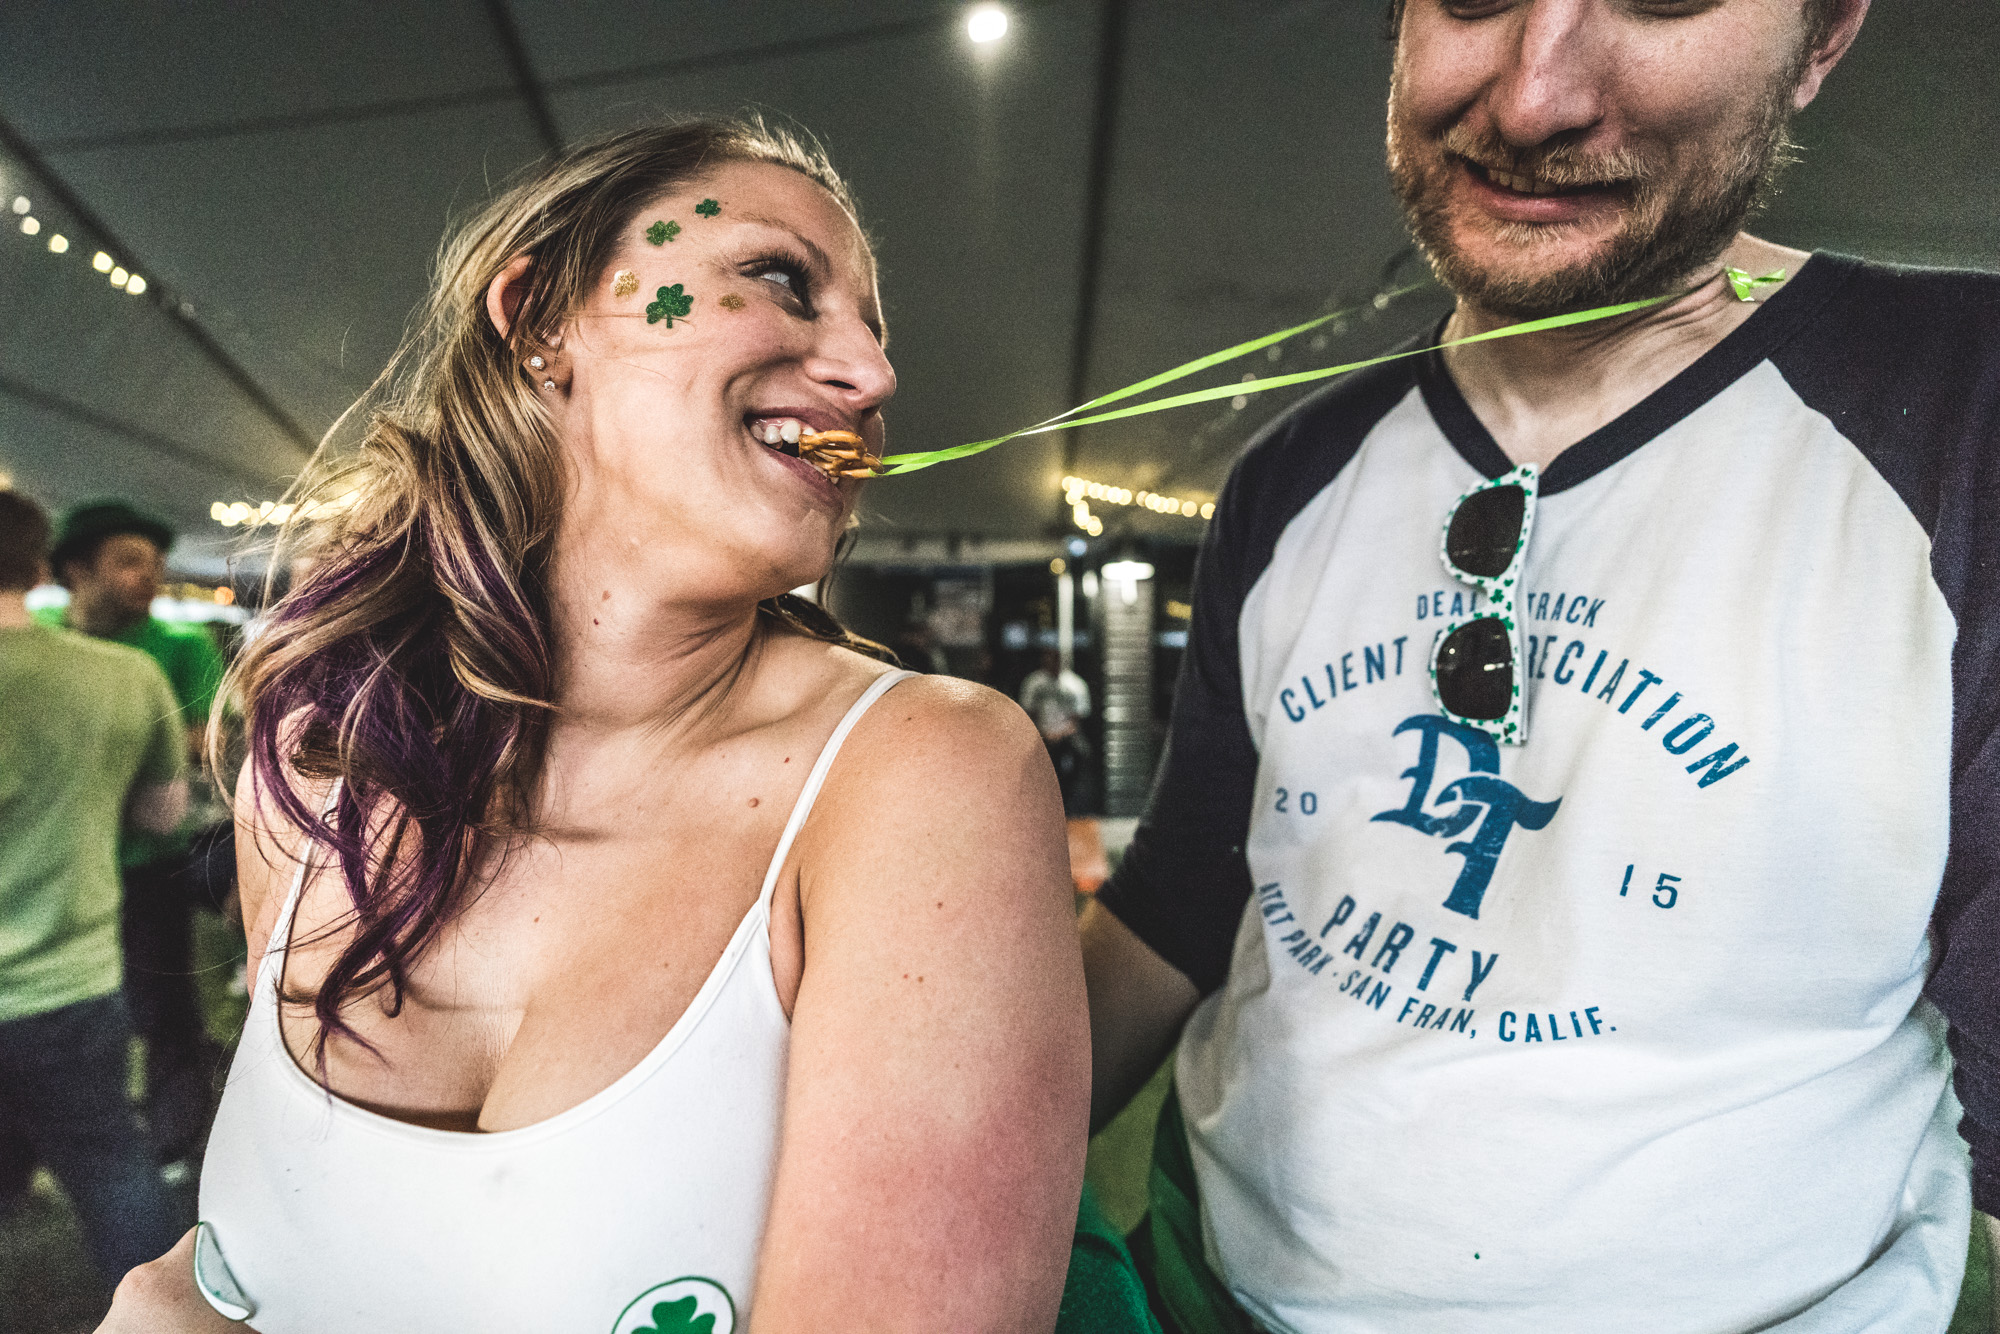 Color photo of a couple on a dance floor wearing wearing various St. Patrick's day accoutrements. The man wears a green ribbon on his neck like a necklace as the woman he's dancing with attempts to eat off the pretzel dangling off of it. The woman looks back at the man jokingly. Taken at the ViewHouse in downtown Littleton, CO.